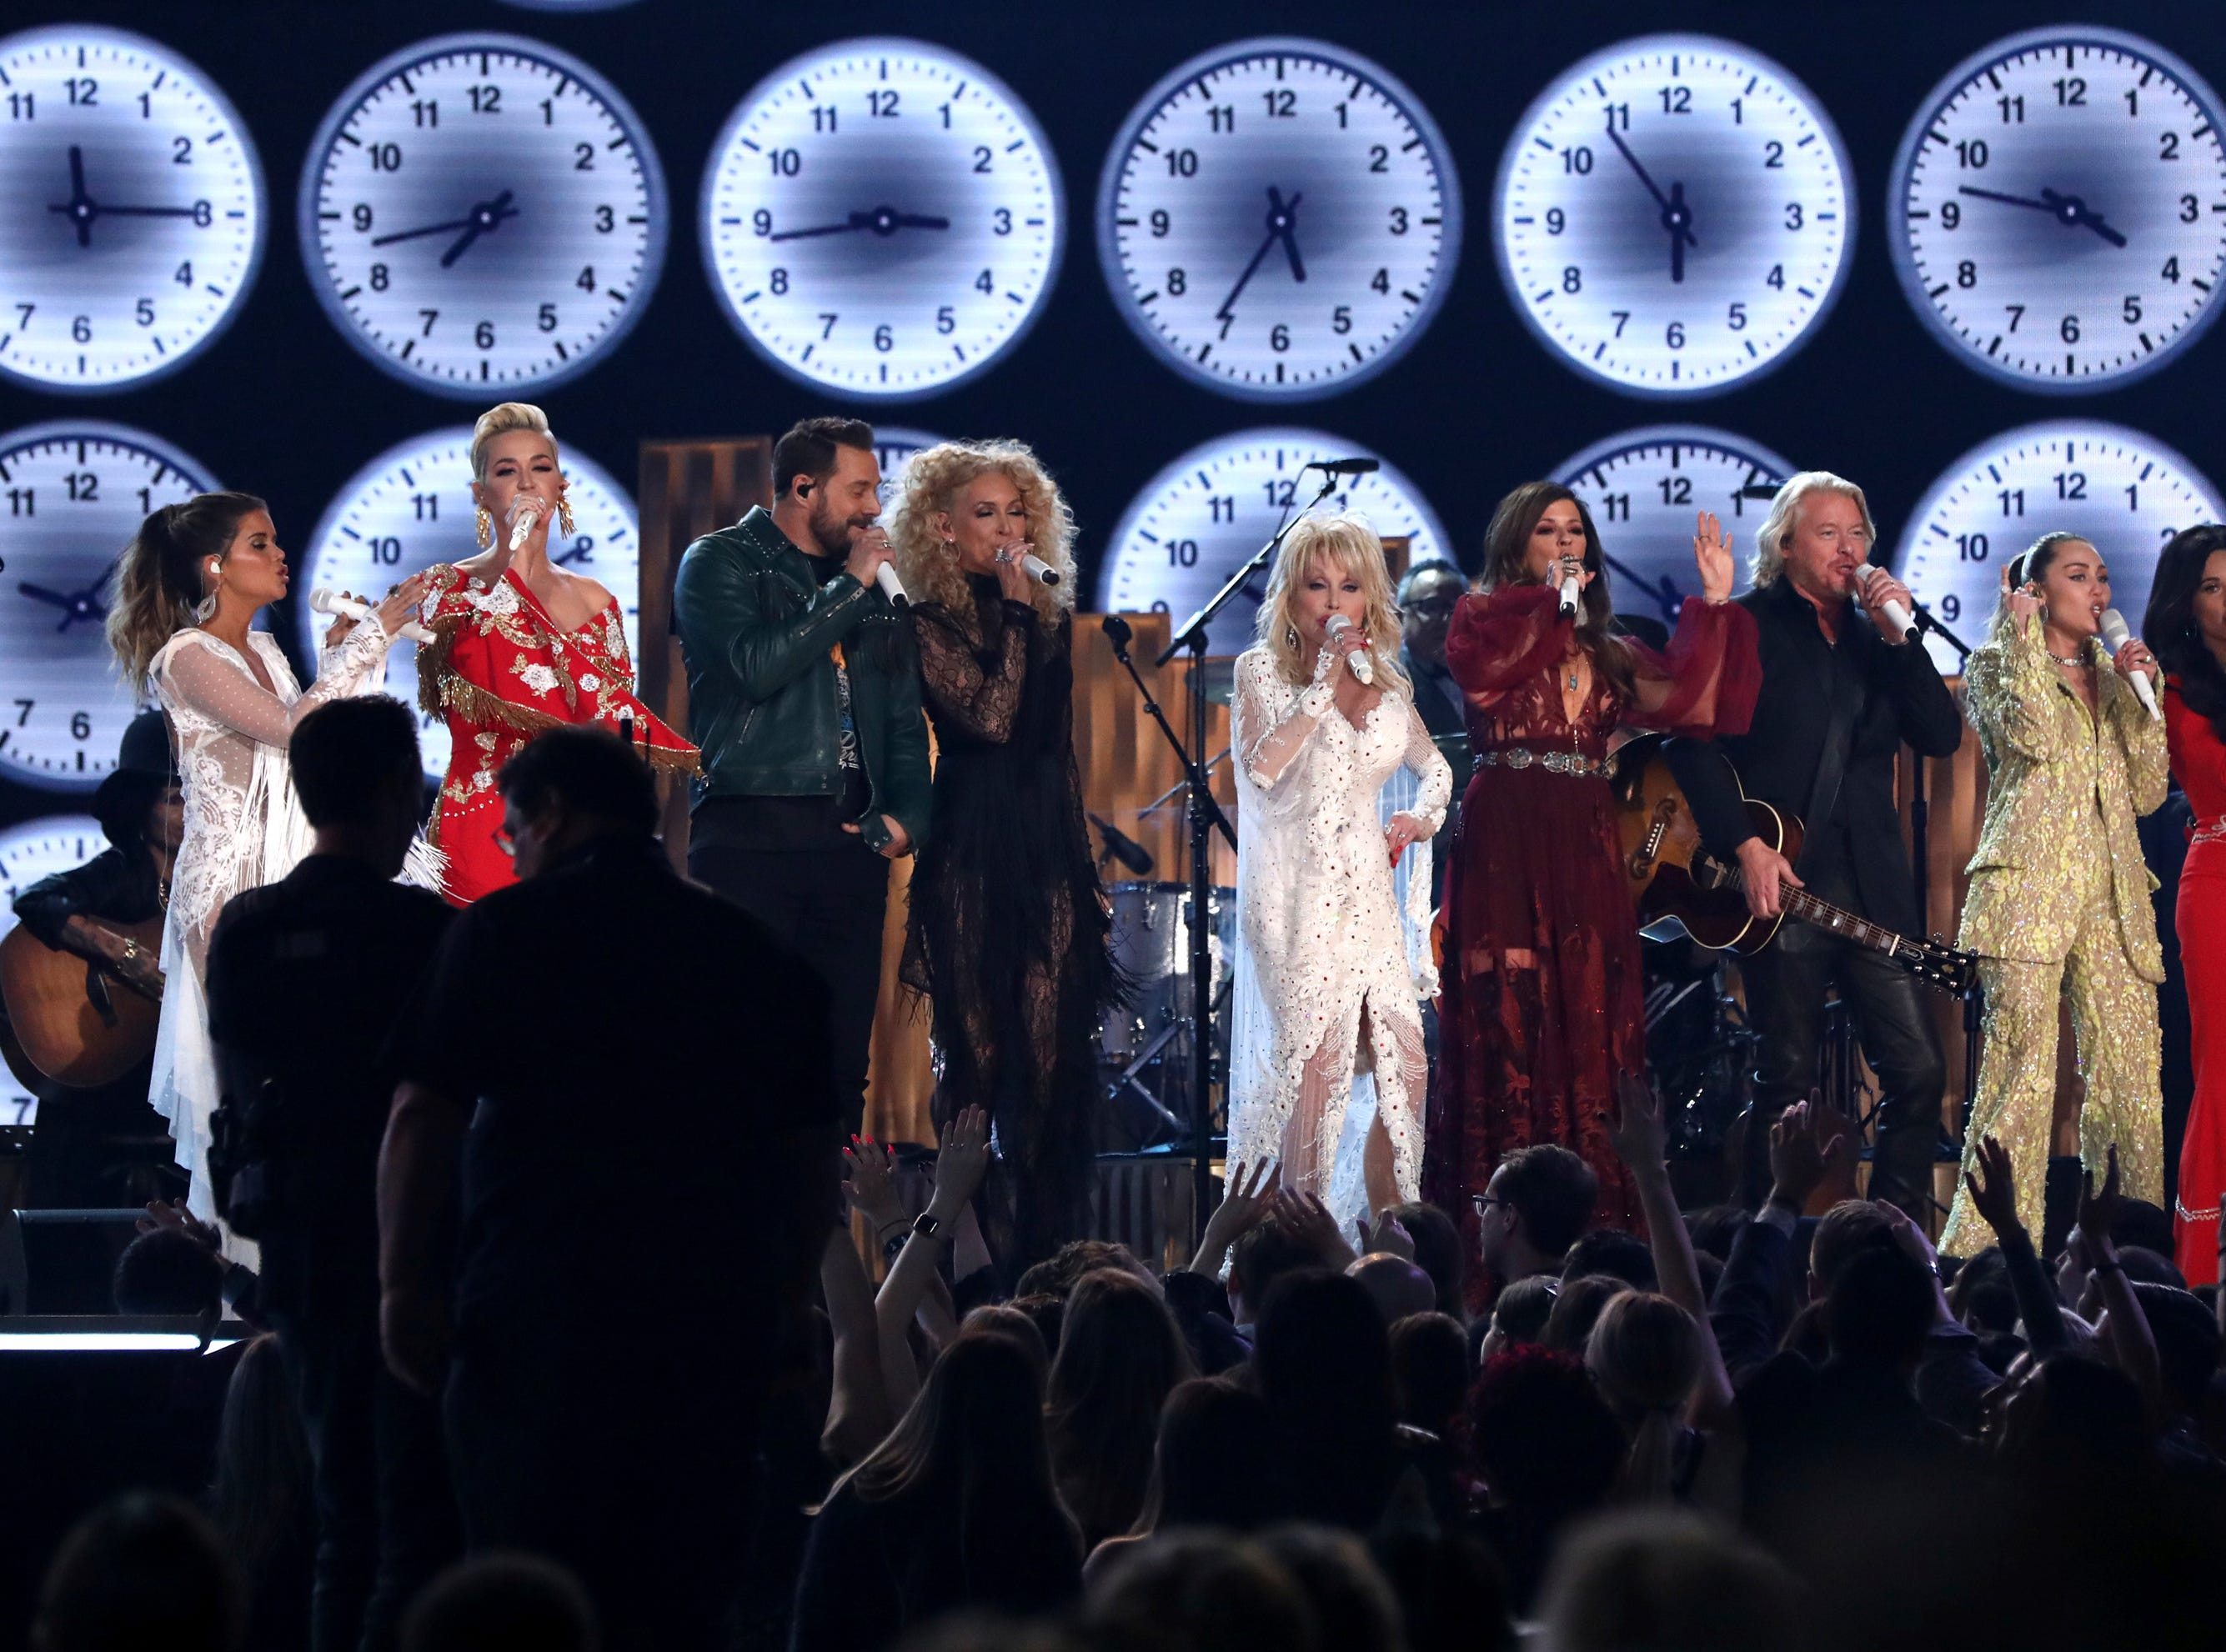 "Maren Morris, from left, Katy Perry, Jimi Westbrook, Kimberly Schlapman, Dolly Parton, Karen Fairchild, Philip Sweet, Miley Cyrus and Kacey Musgraves perform ""9 to 5"" at the 61st annual Grammy Awards."